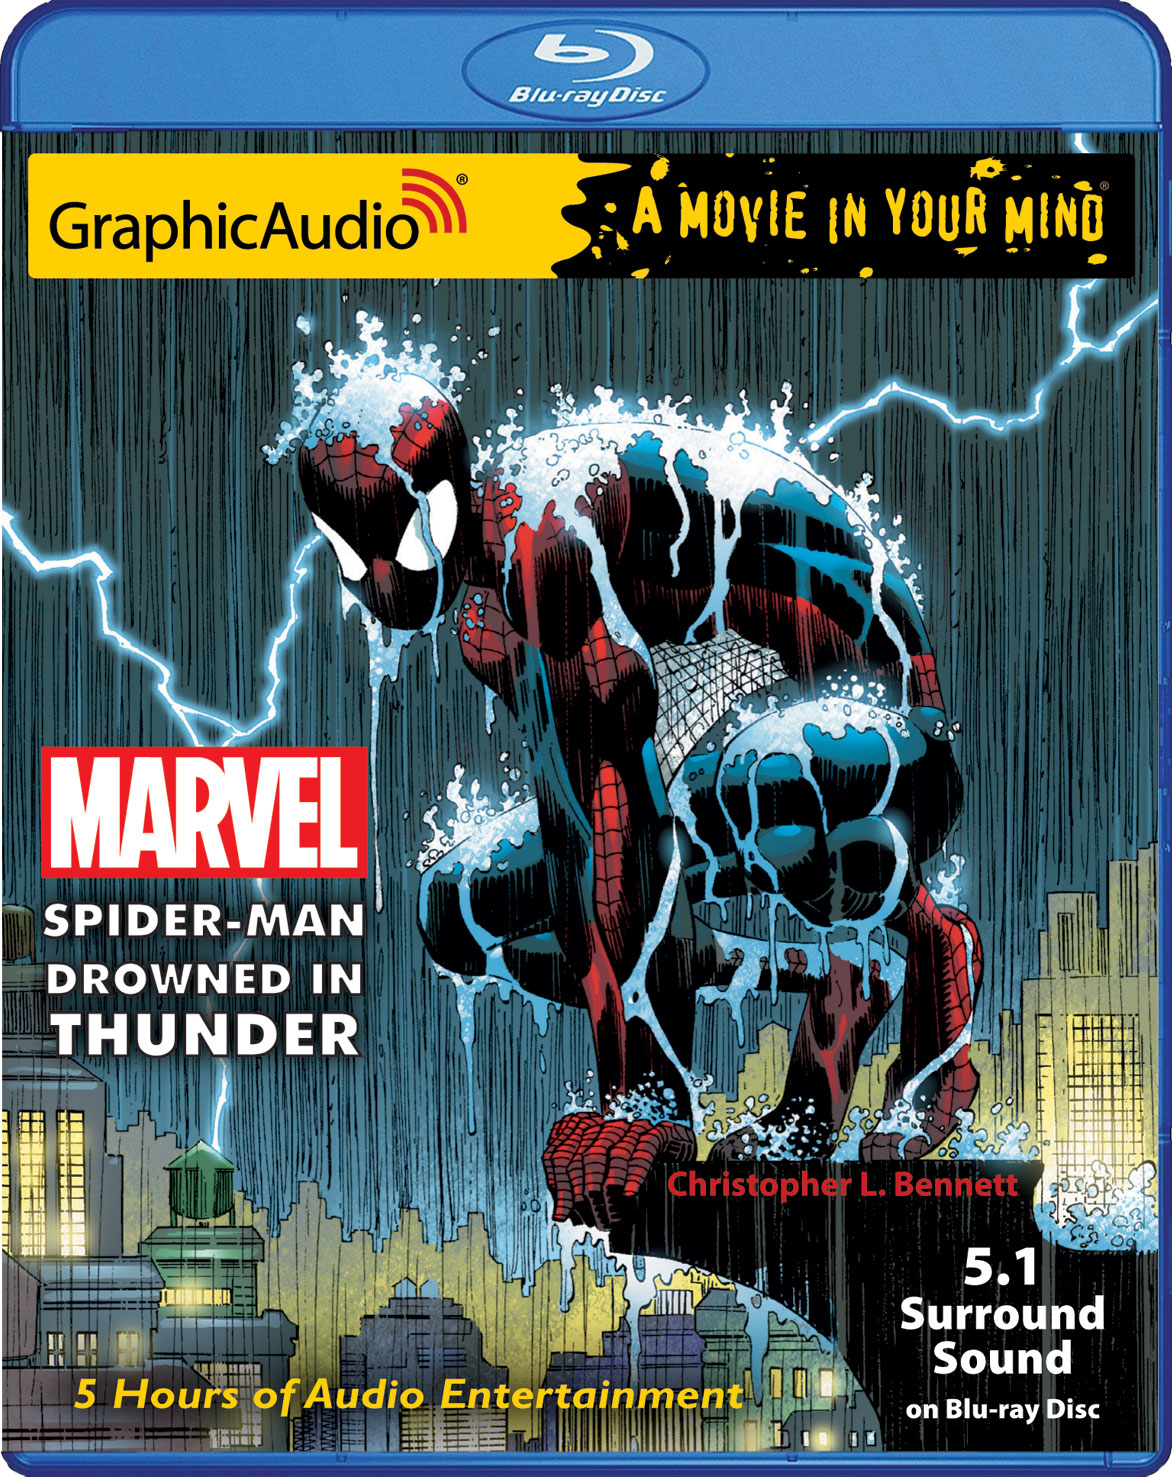 MARVEL SPIDER-MAN: DROWNED IN THUNDER in 5.1 Surround Sound DTS on Blu-Ray  DiscMARVEL SPIDER-MAN: DROWNED IN THUNDER in 5.1 Surround Sound DTS on  Blu-Ray ...